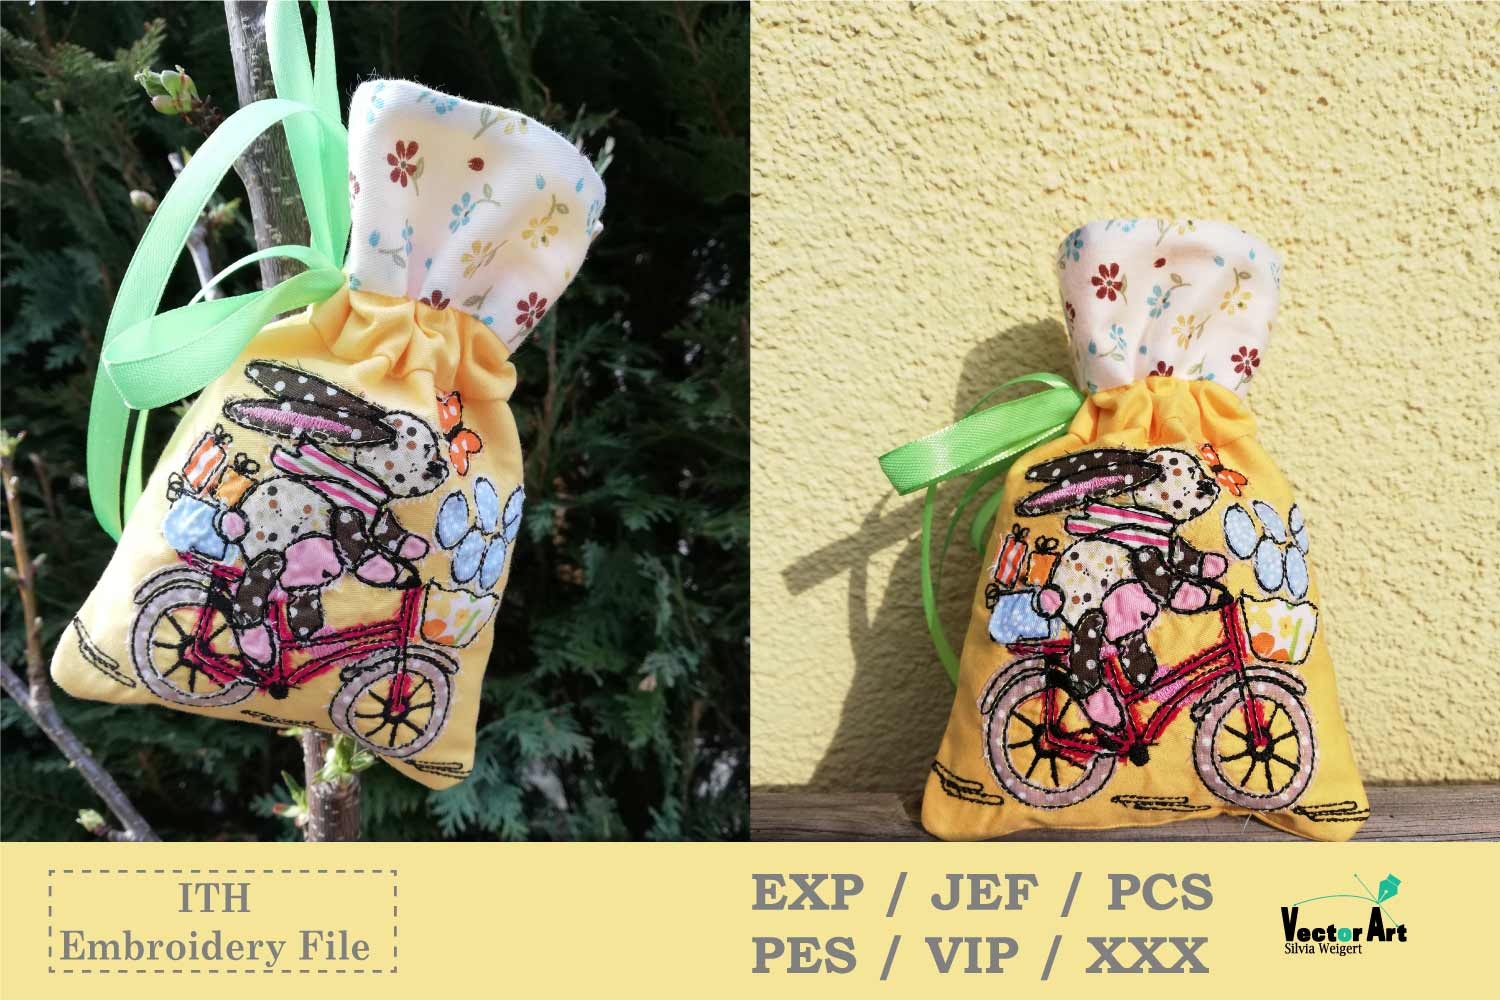 ITH -Drawstring Bag with Easter Motif - Embroidery File example image 4